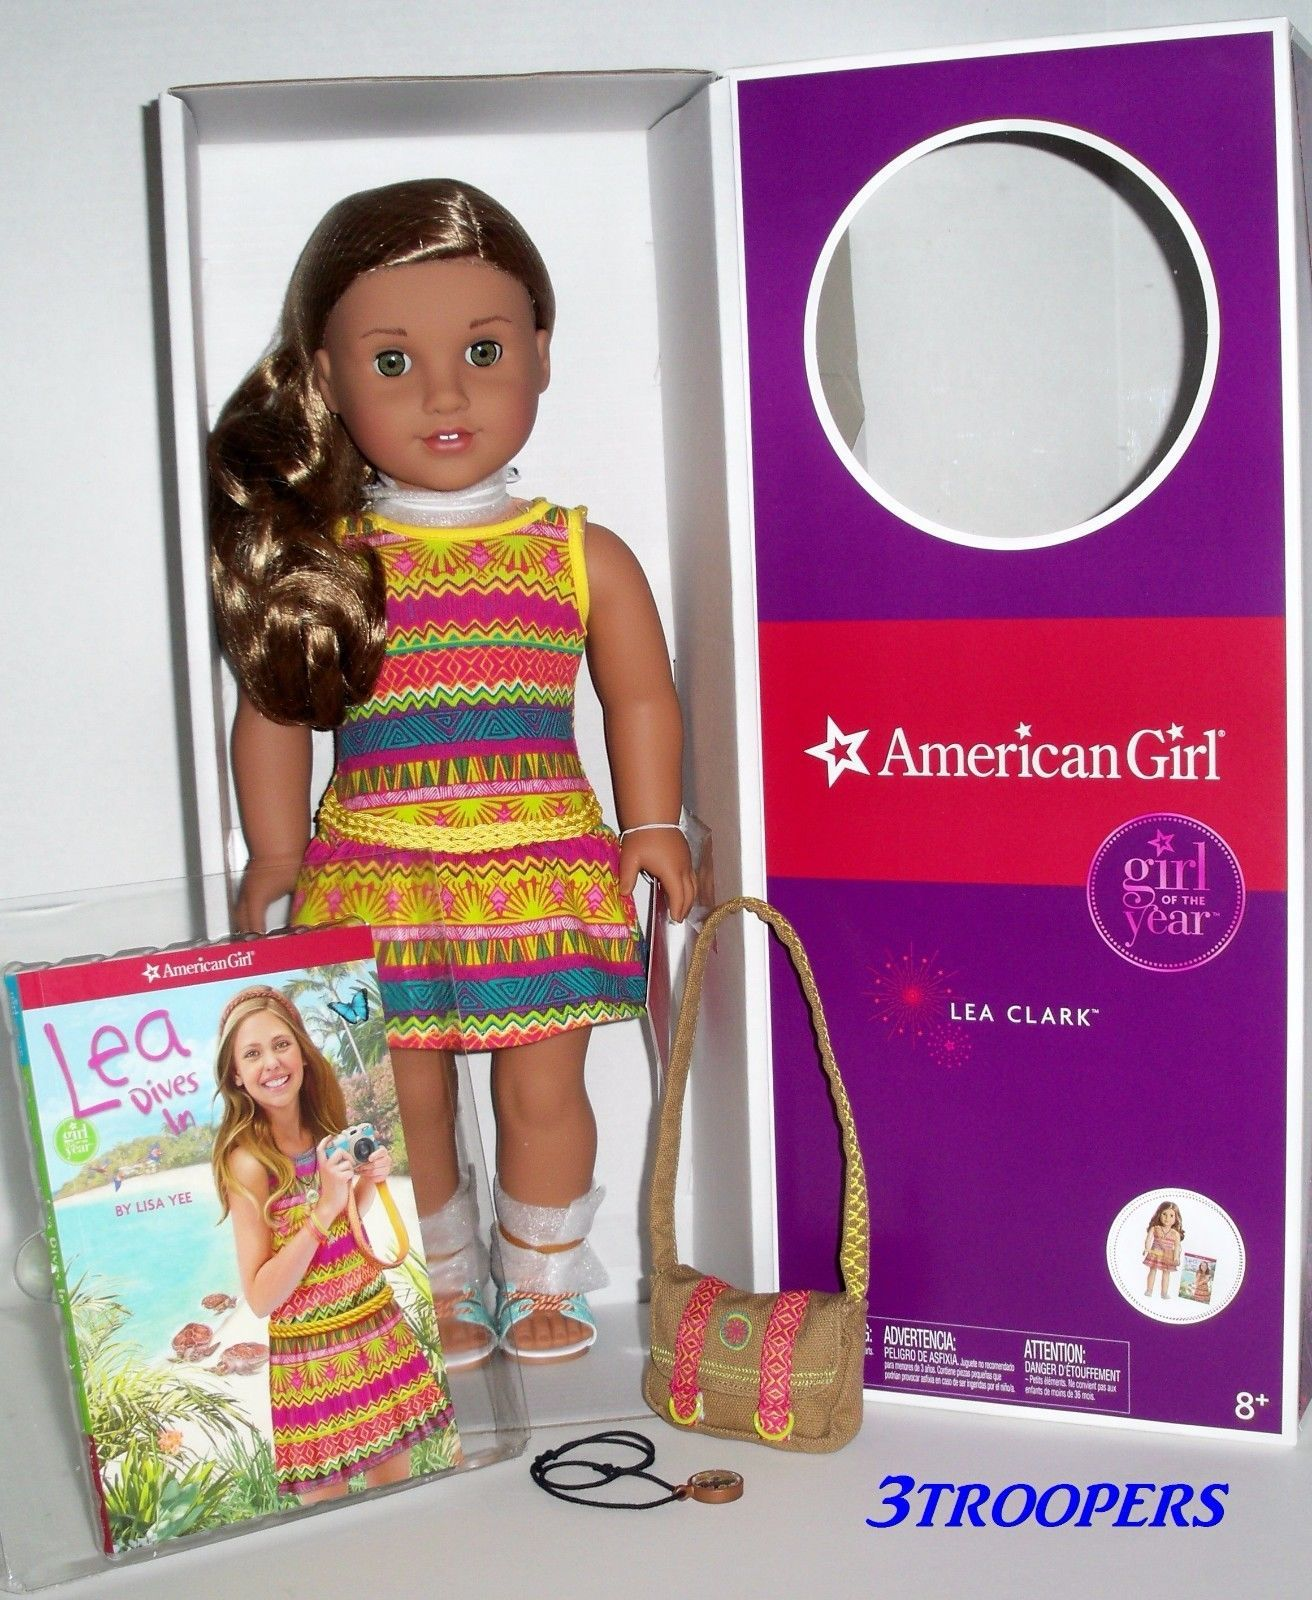 American Girl Doll Lea Clark Girl of the Year 2016 Compass Meet Necklace ONLY